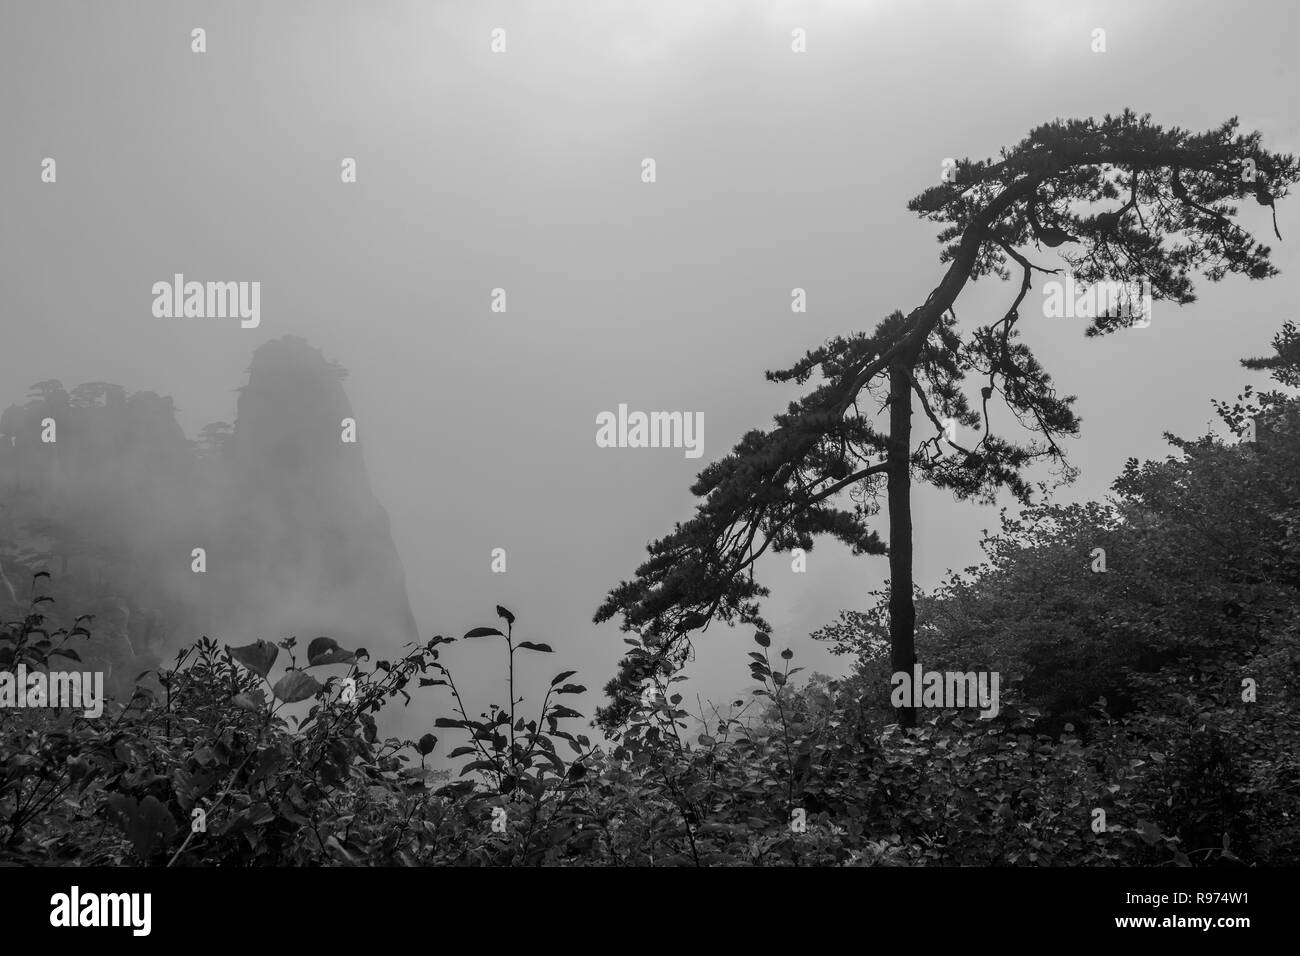 Windblown Huangshan pine in the mists, Huangshan, Anhui, China - Stock Image